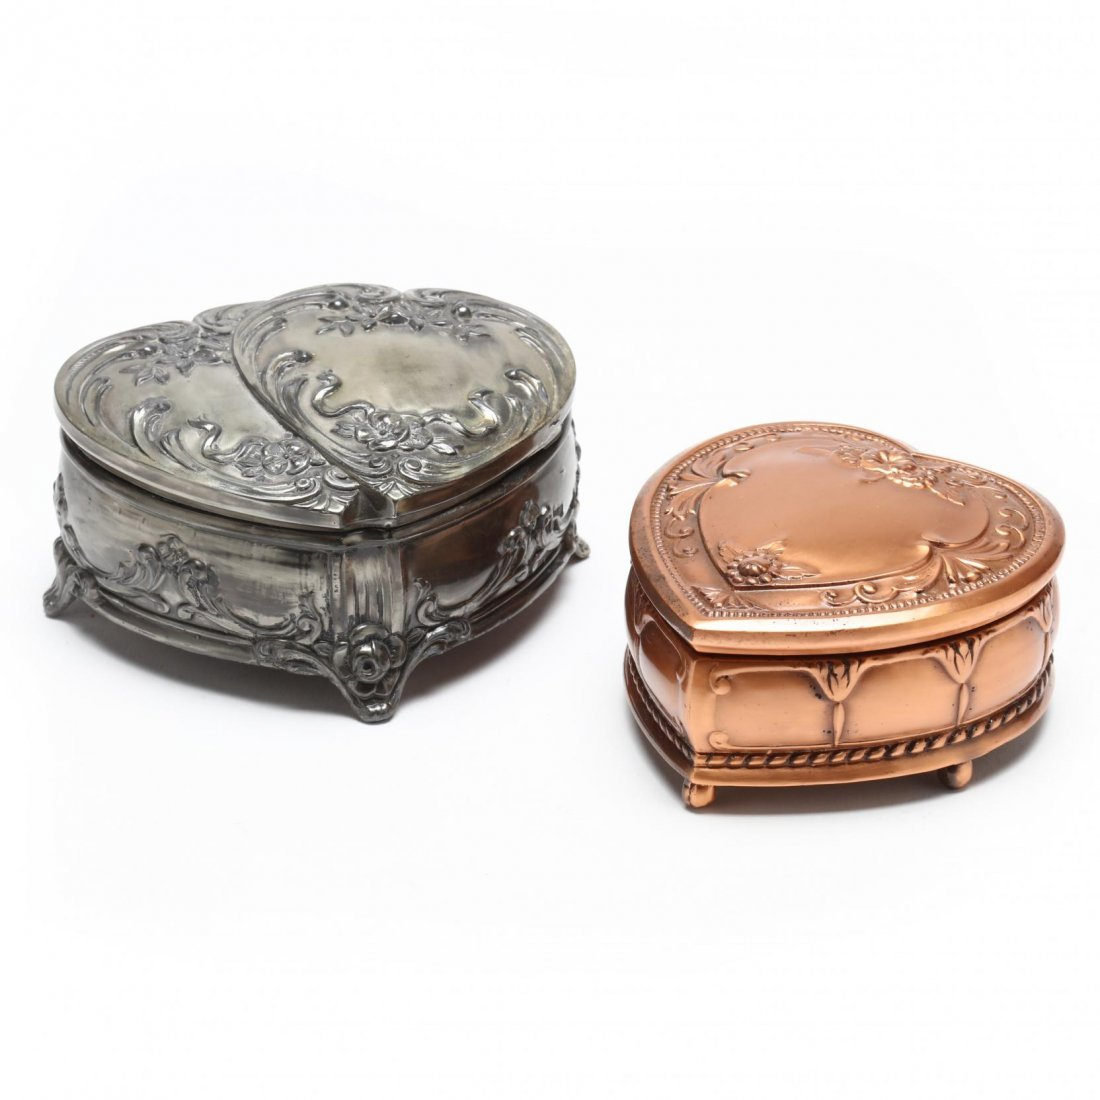 Two Jennings Brothers Heart Shaped Jewelry Boxes